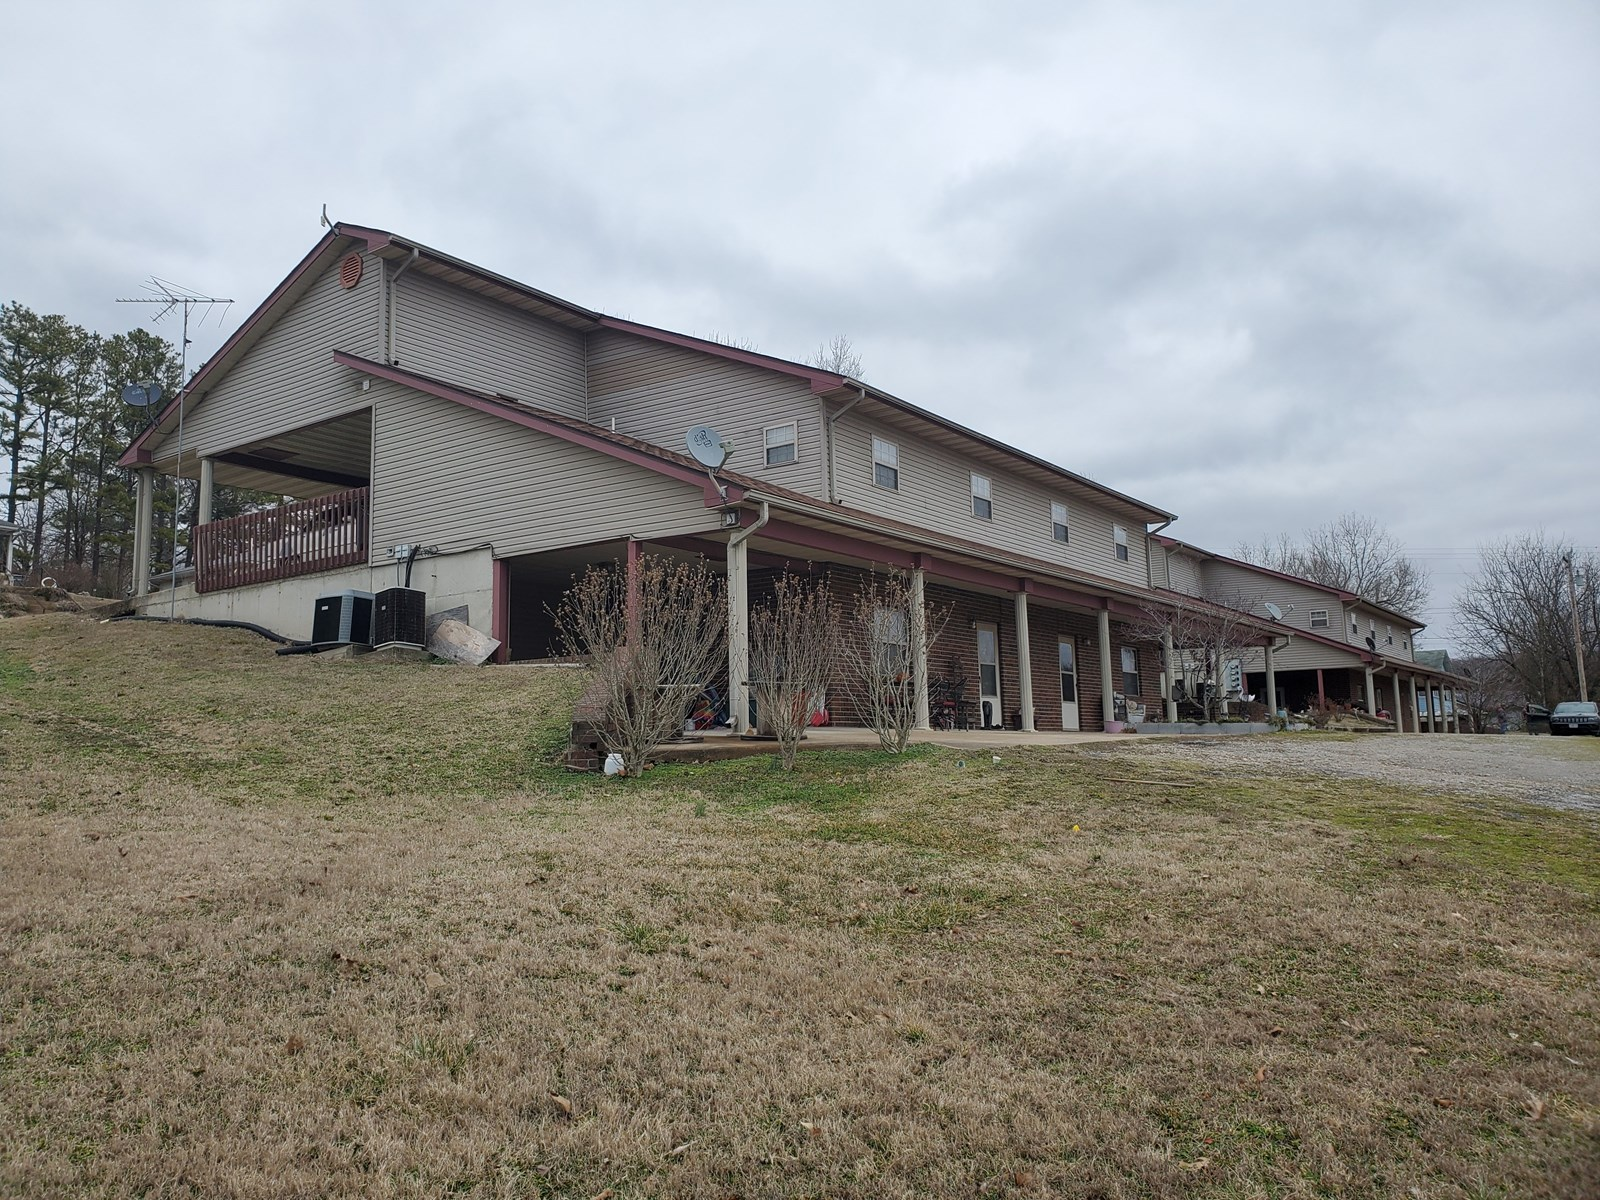 Two Fourplexes for Sale in Southern Missouri Ozarks Town